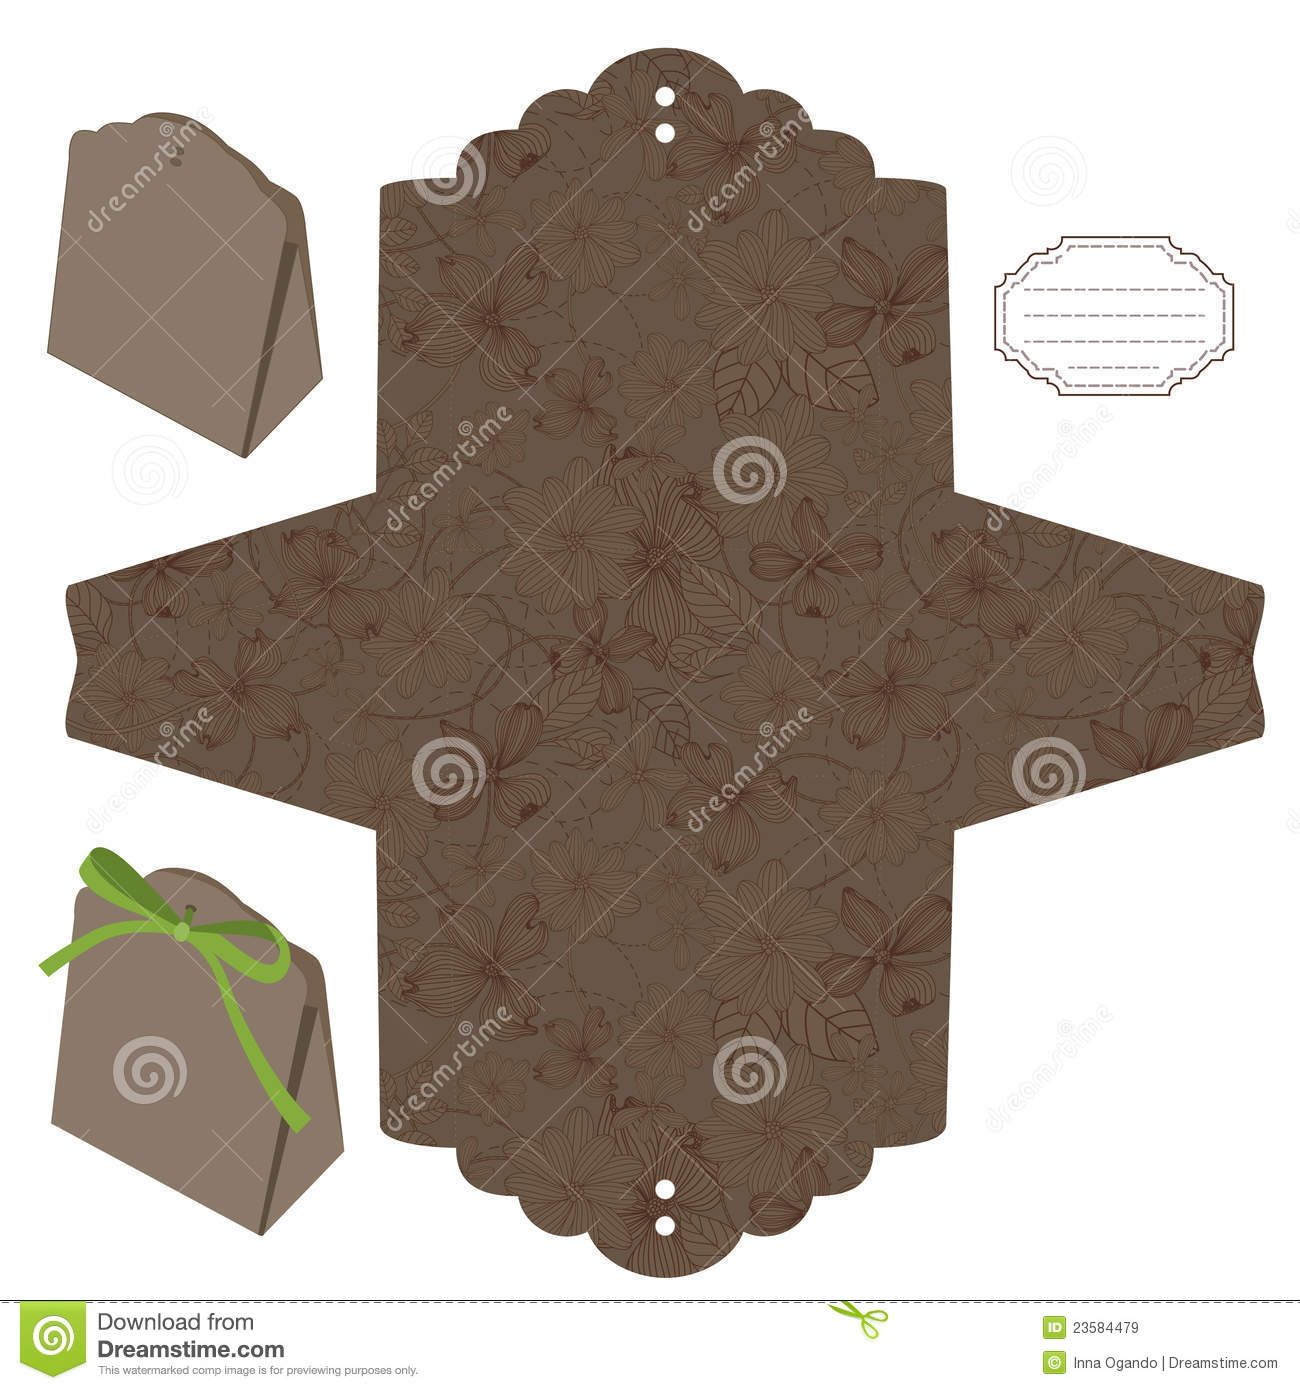 Die Cut Box Templates Free Great Deals And Ideas At Www.die Cut   Gift Box Templates Free Download